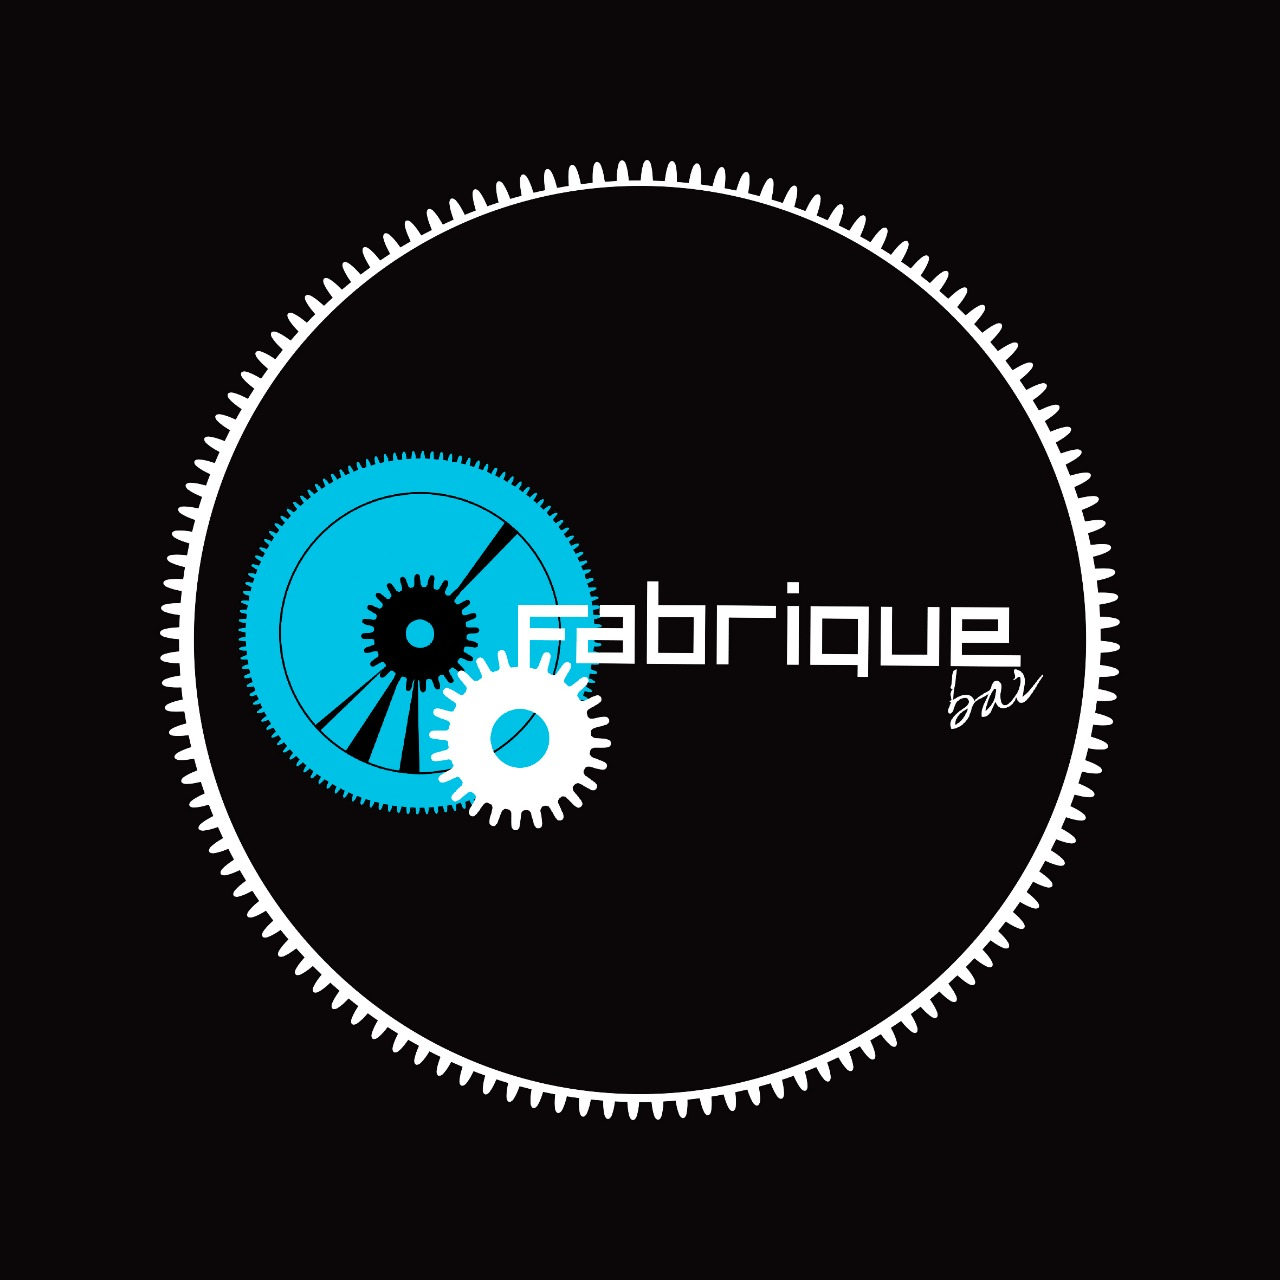 Fabrique bar